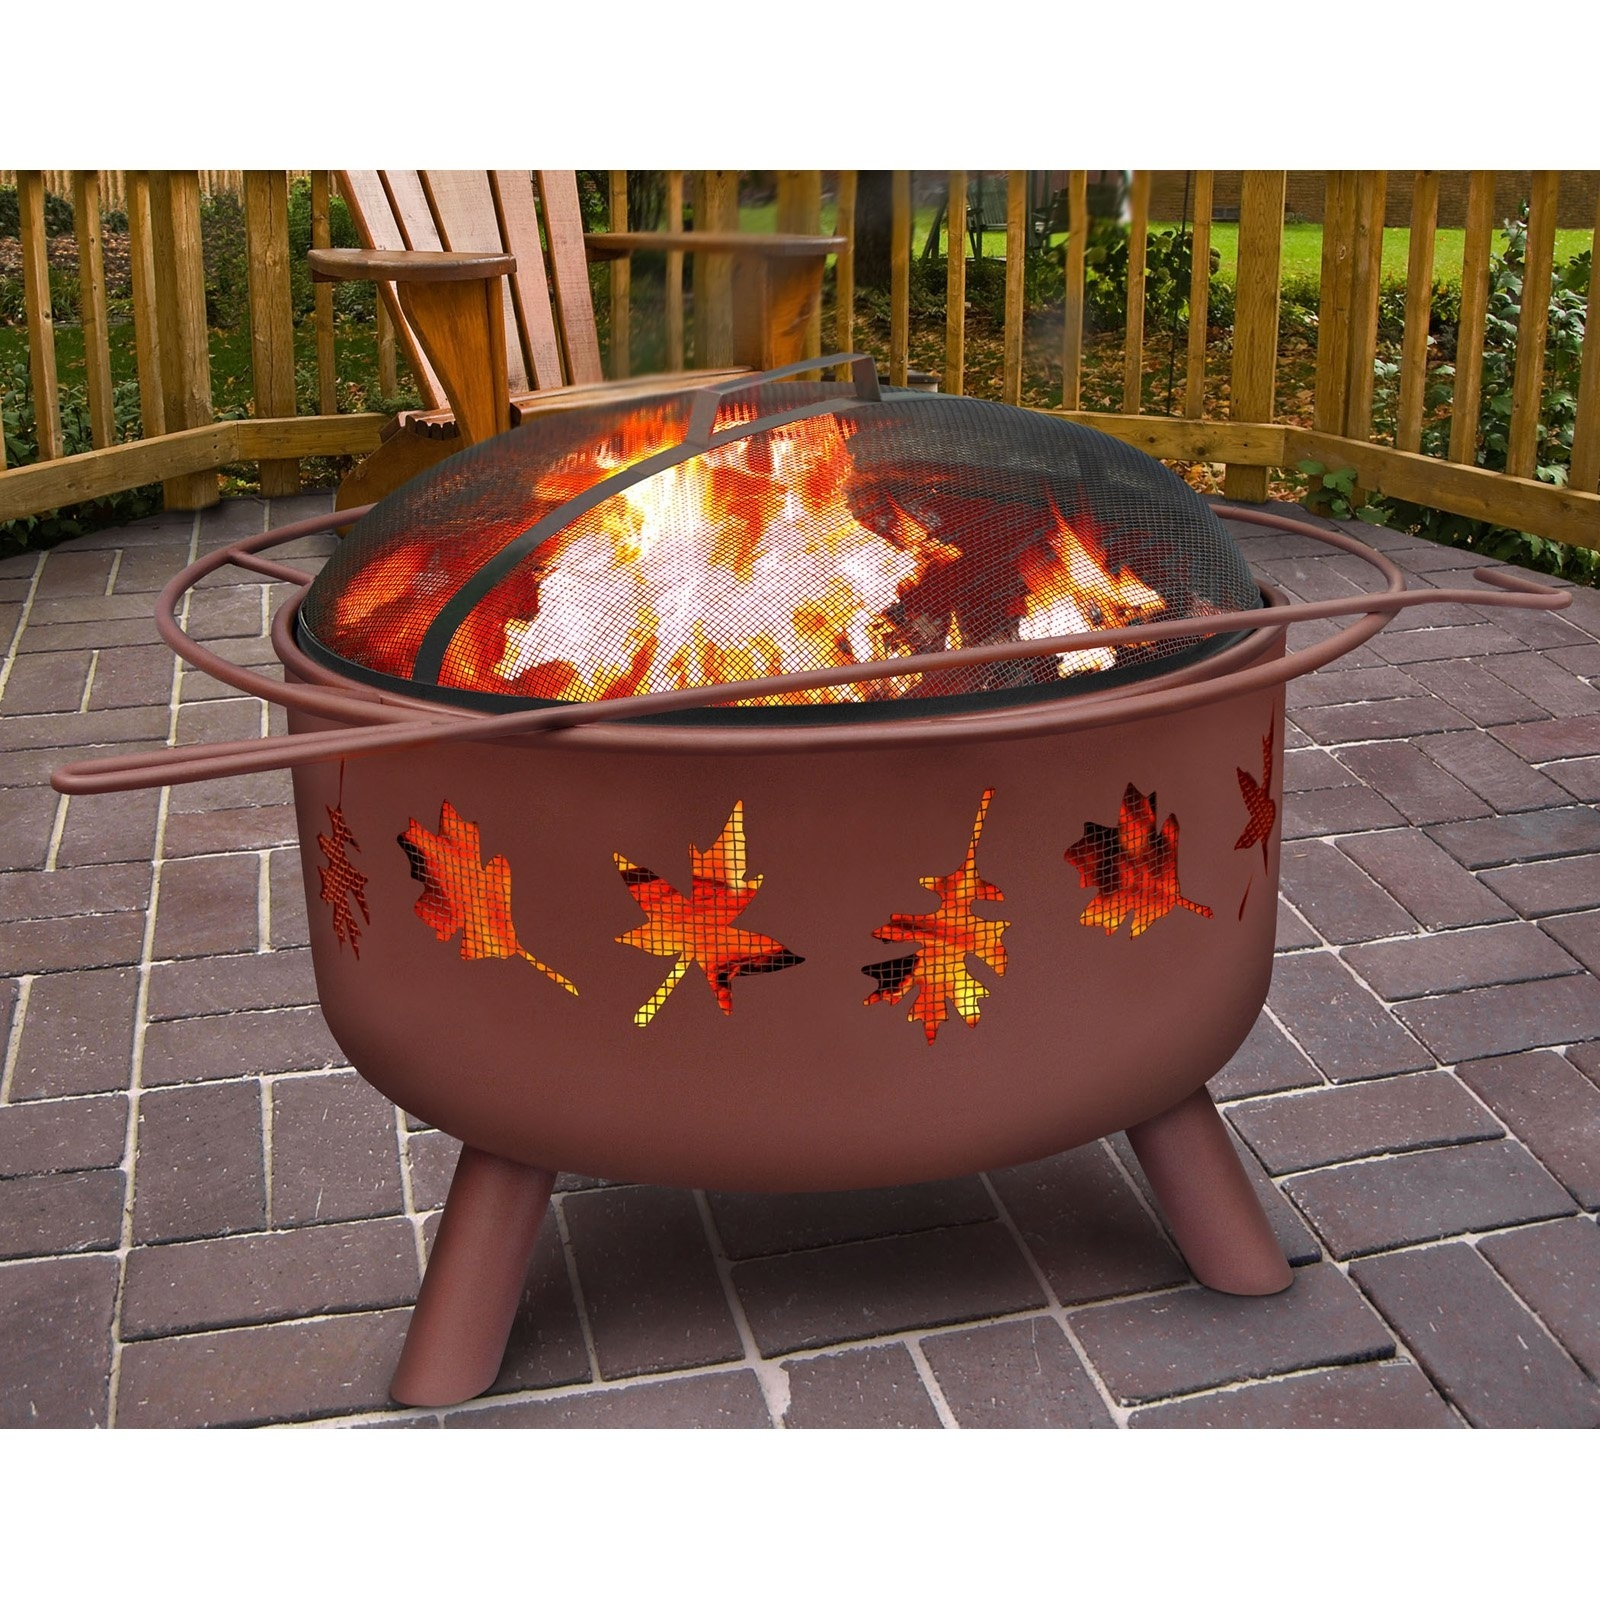 Image of: Grill Kits Relaxing Chiminea Within Large Clay Chiminea Outdoor Fireplace